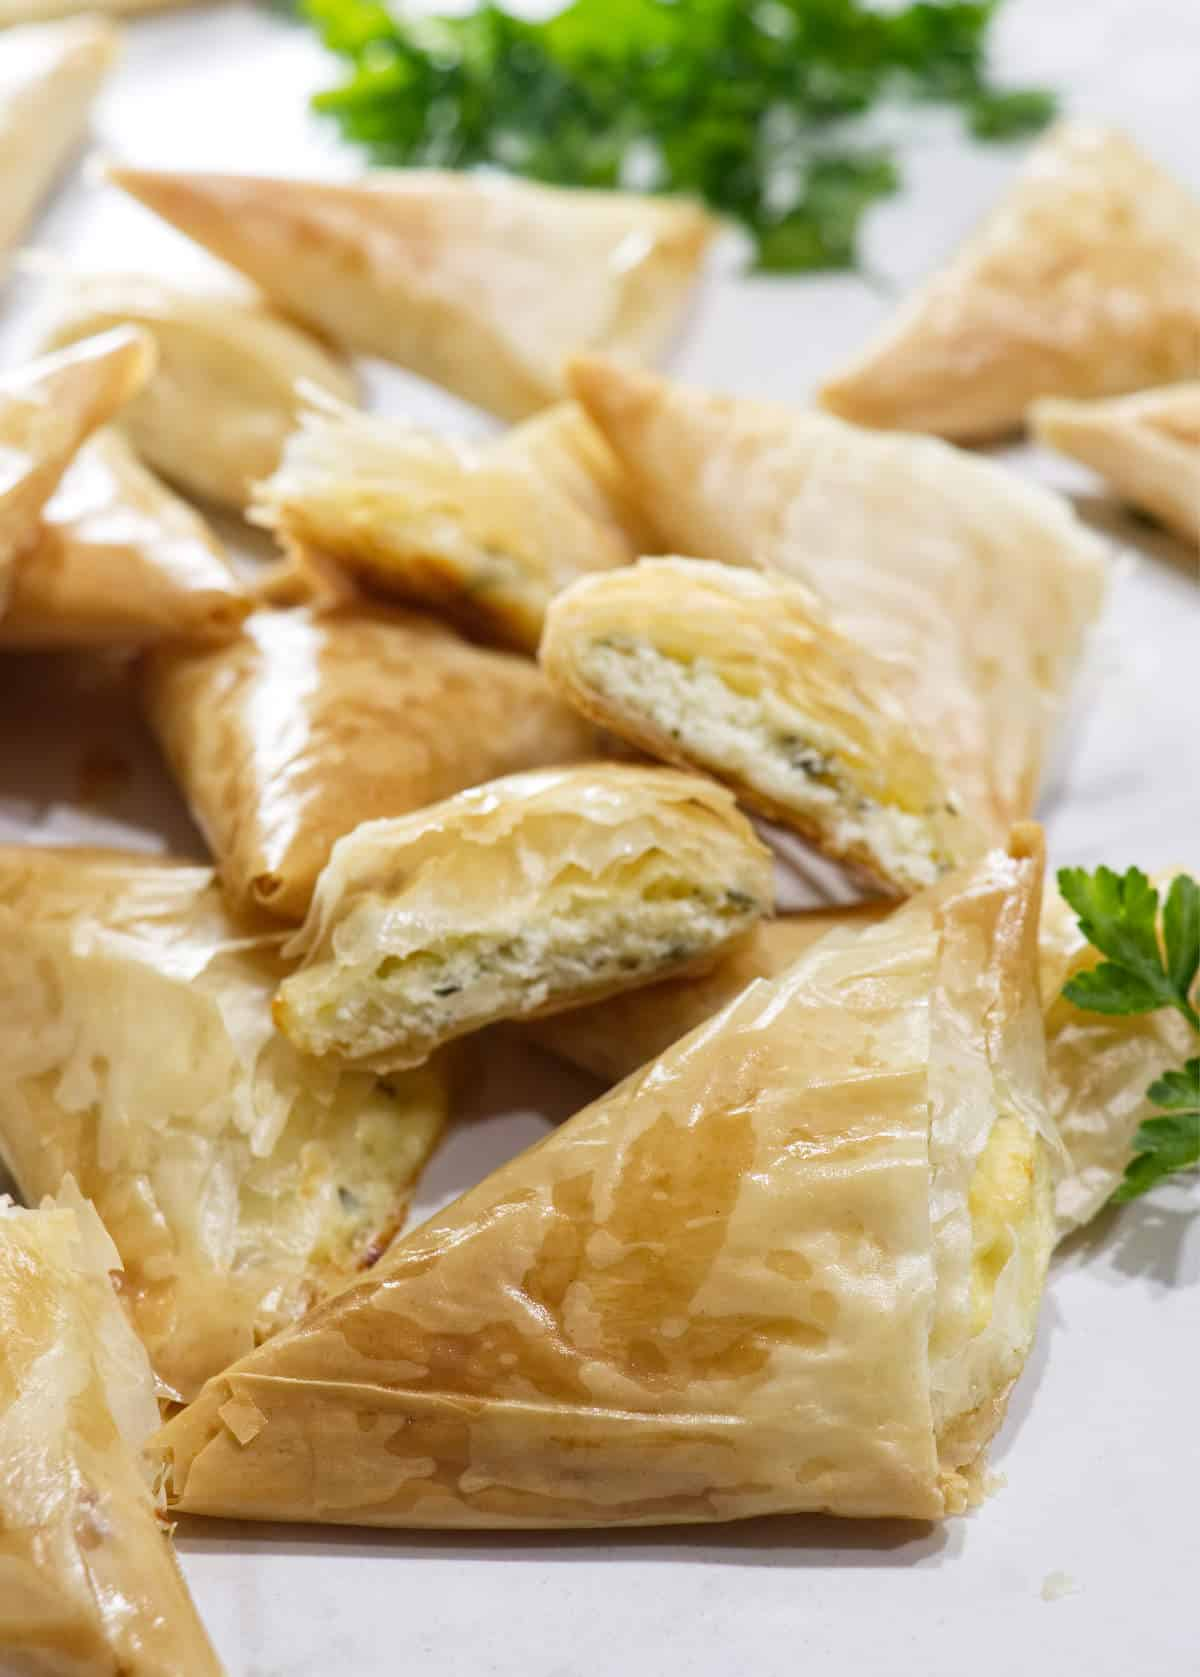 Greek Cheese Triangle Pies (Tiropita)